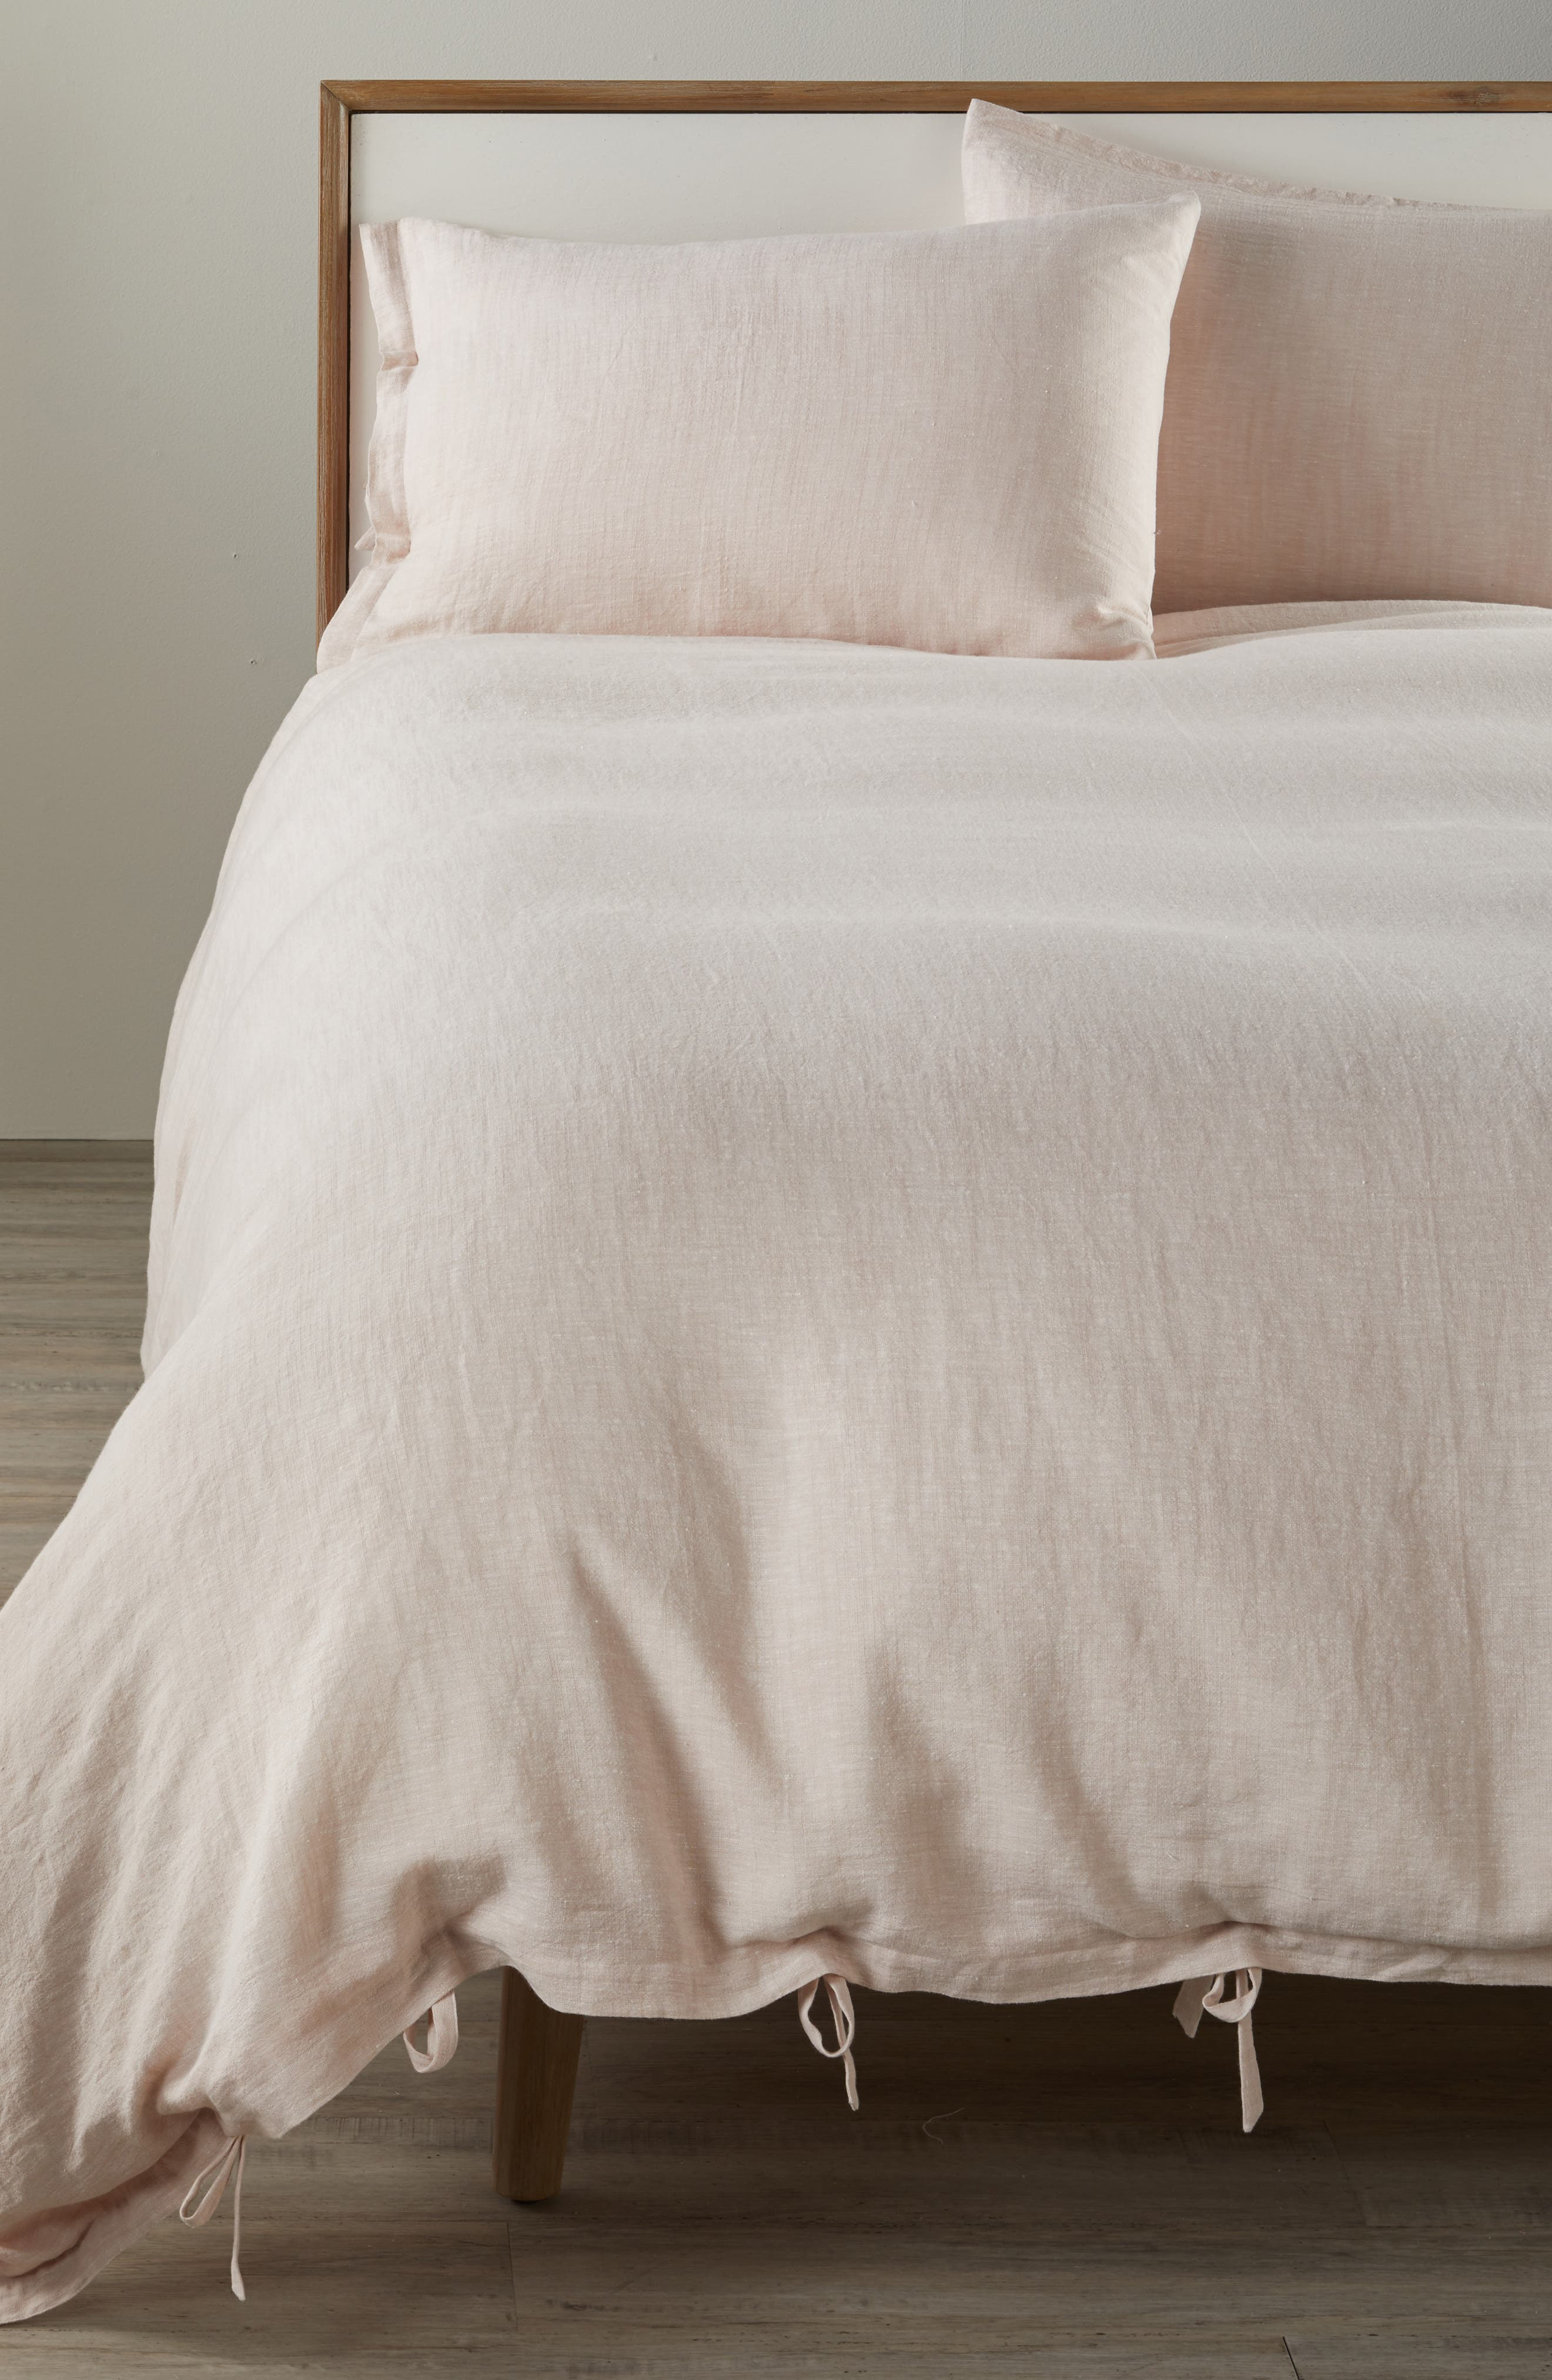 duvet stunning full cover stitched white ruffle of scallop size covers target